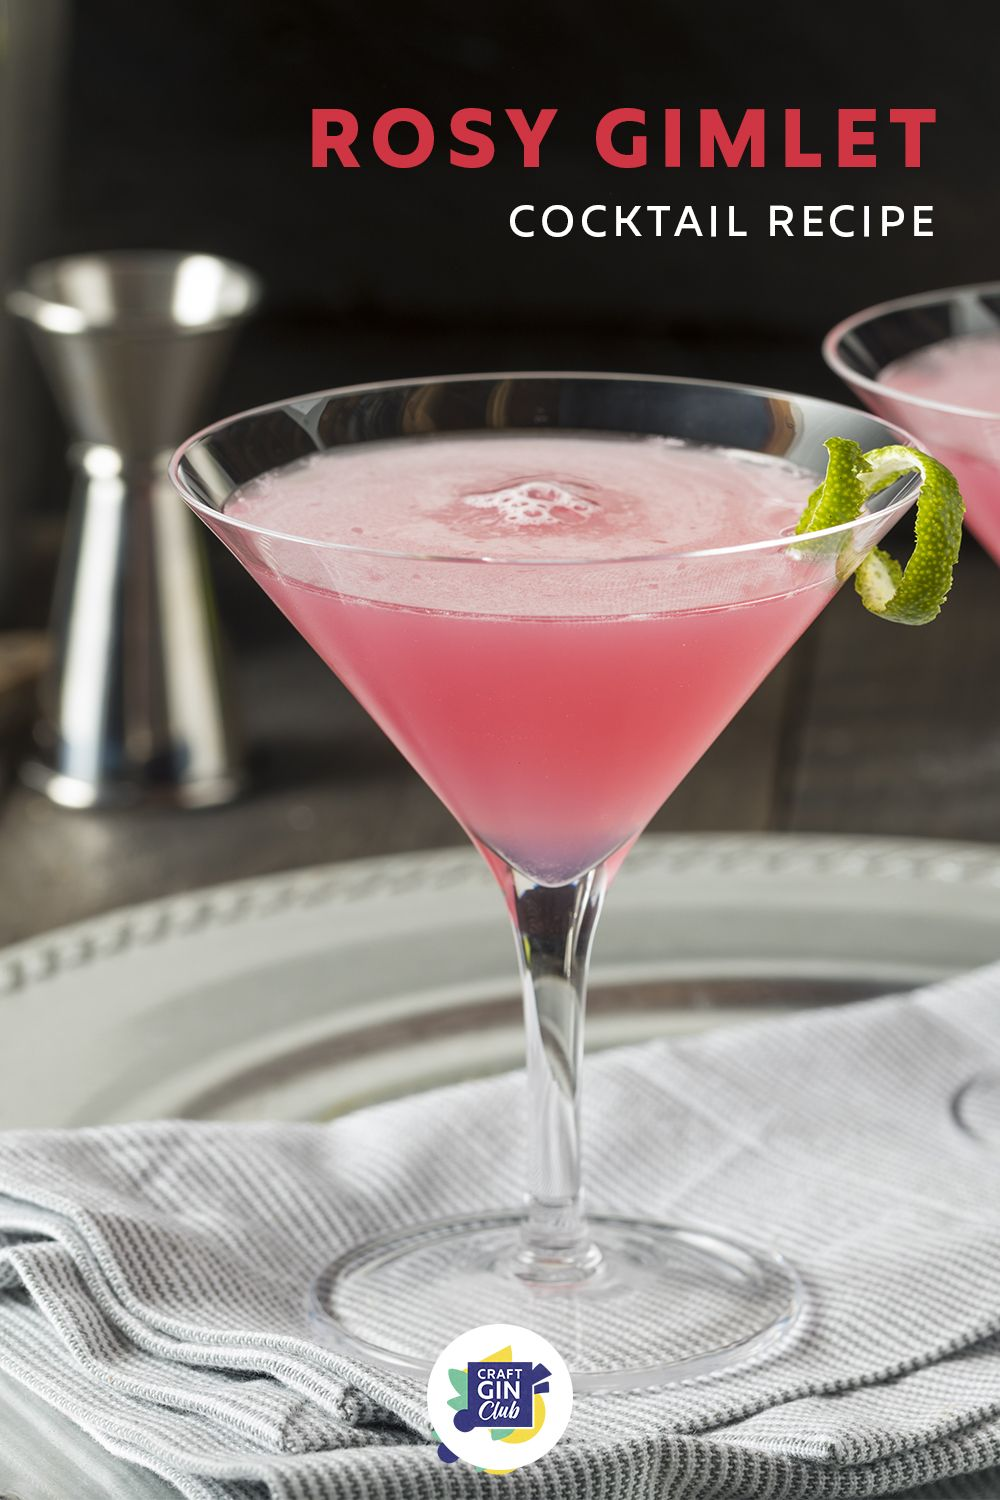 Rose Wine Gin And Lime Gimlet Cocktail Recipe In 2020 Craft Gin Gin Gimlet Gin Drinks